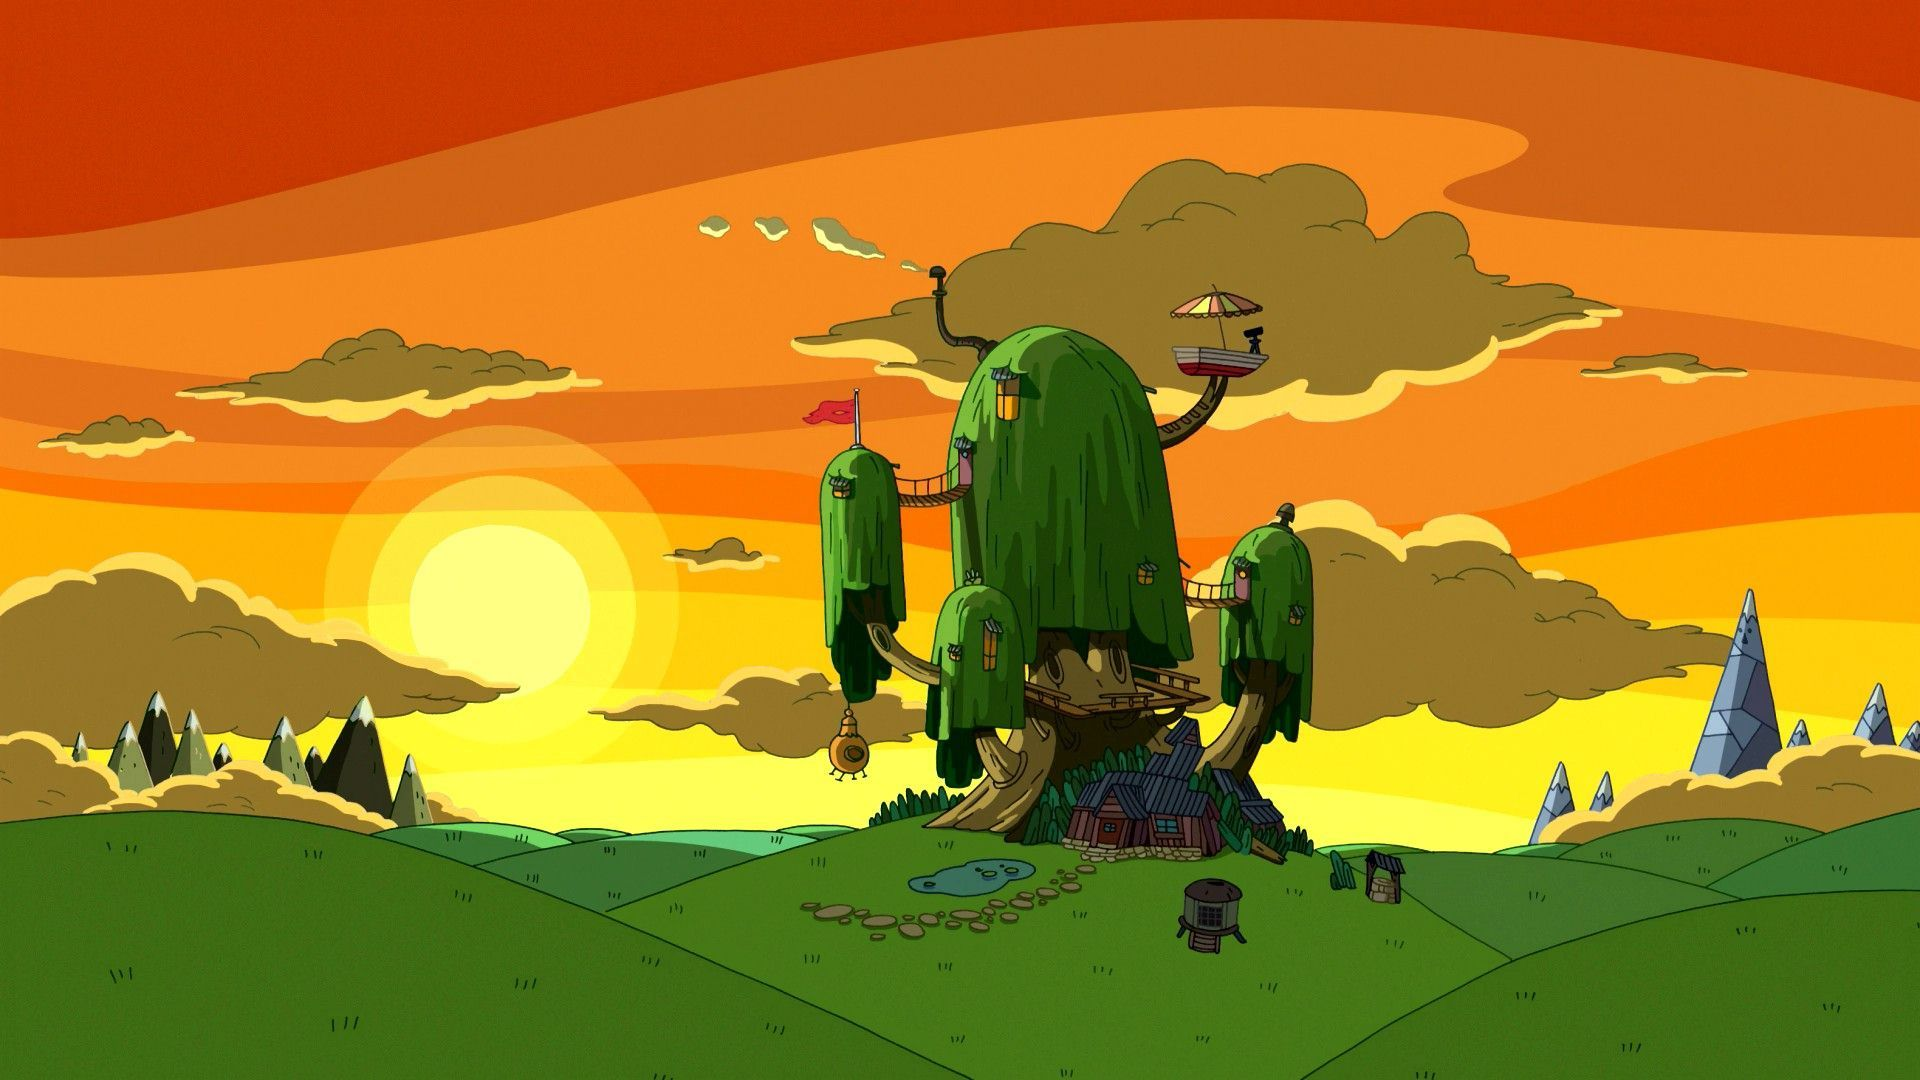 Adventure time wallpapers hd wallpaper hd wallpapers pinterest adventure time wallpapers hd wallpaper thecheapjerseys Choice Image